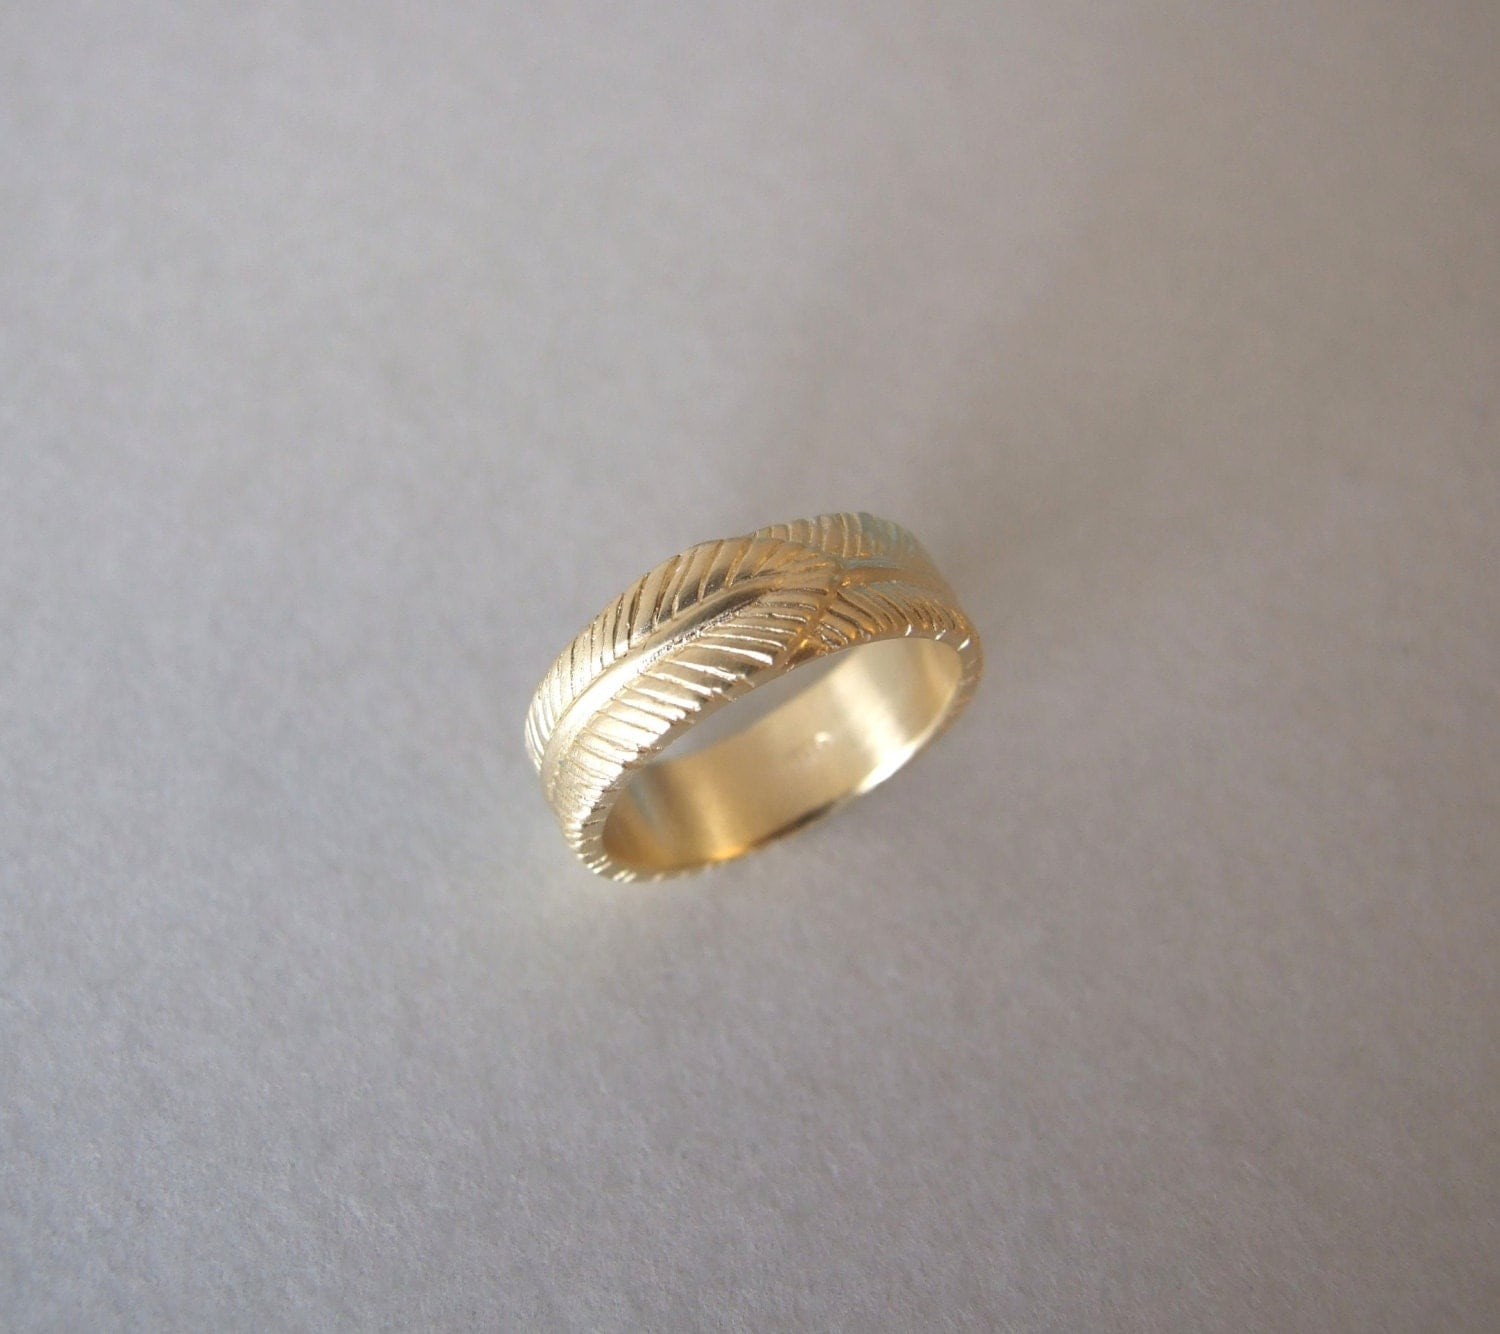 jewelry rings width wedding front engagement coffin gold kristin recycled feath band products mid feather set